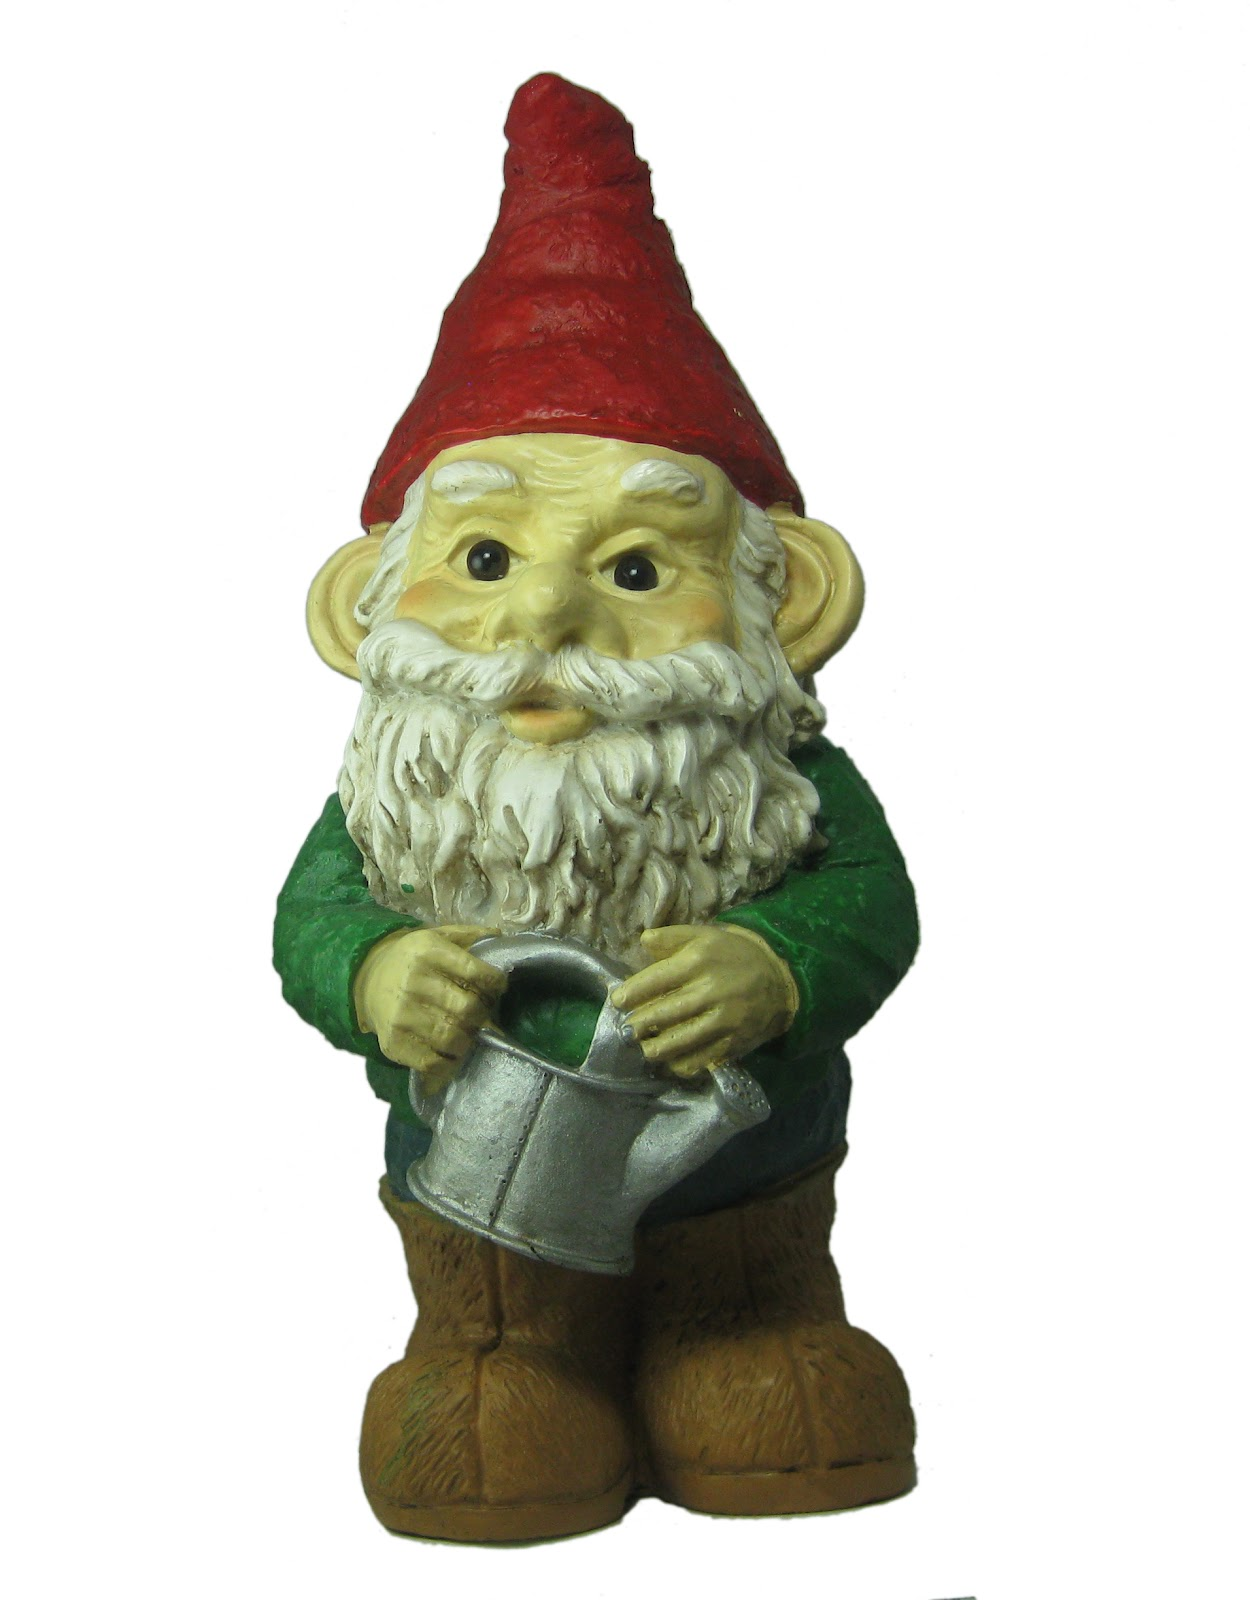 Gnome Garden: Party Of 3: I Am A Marketing GENIUS